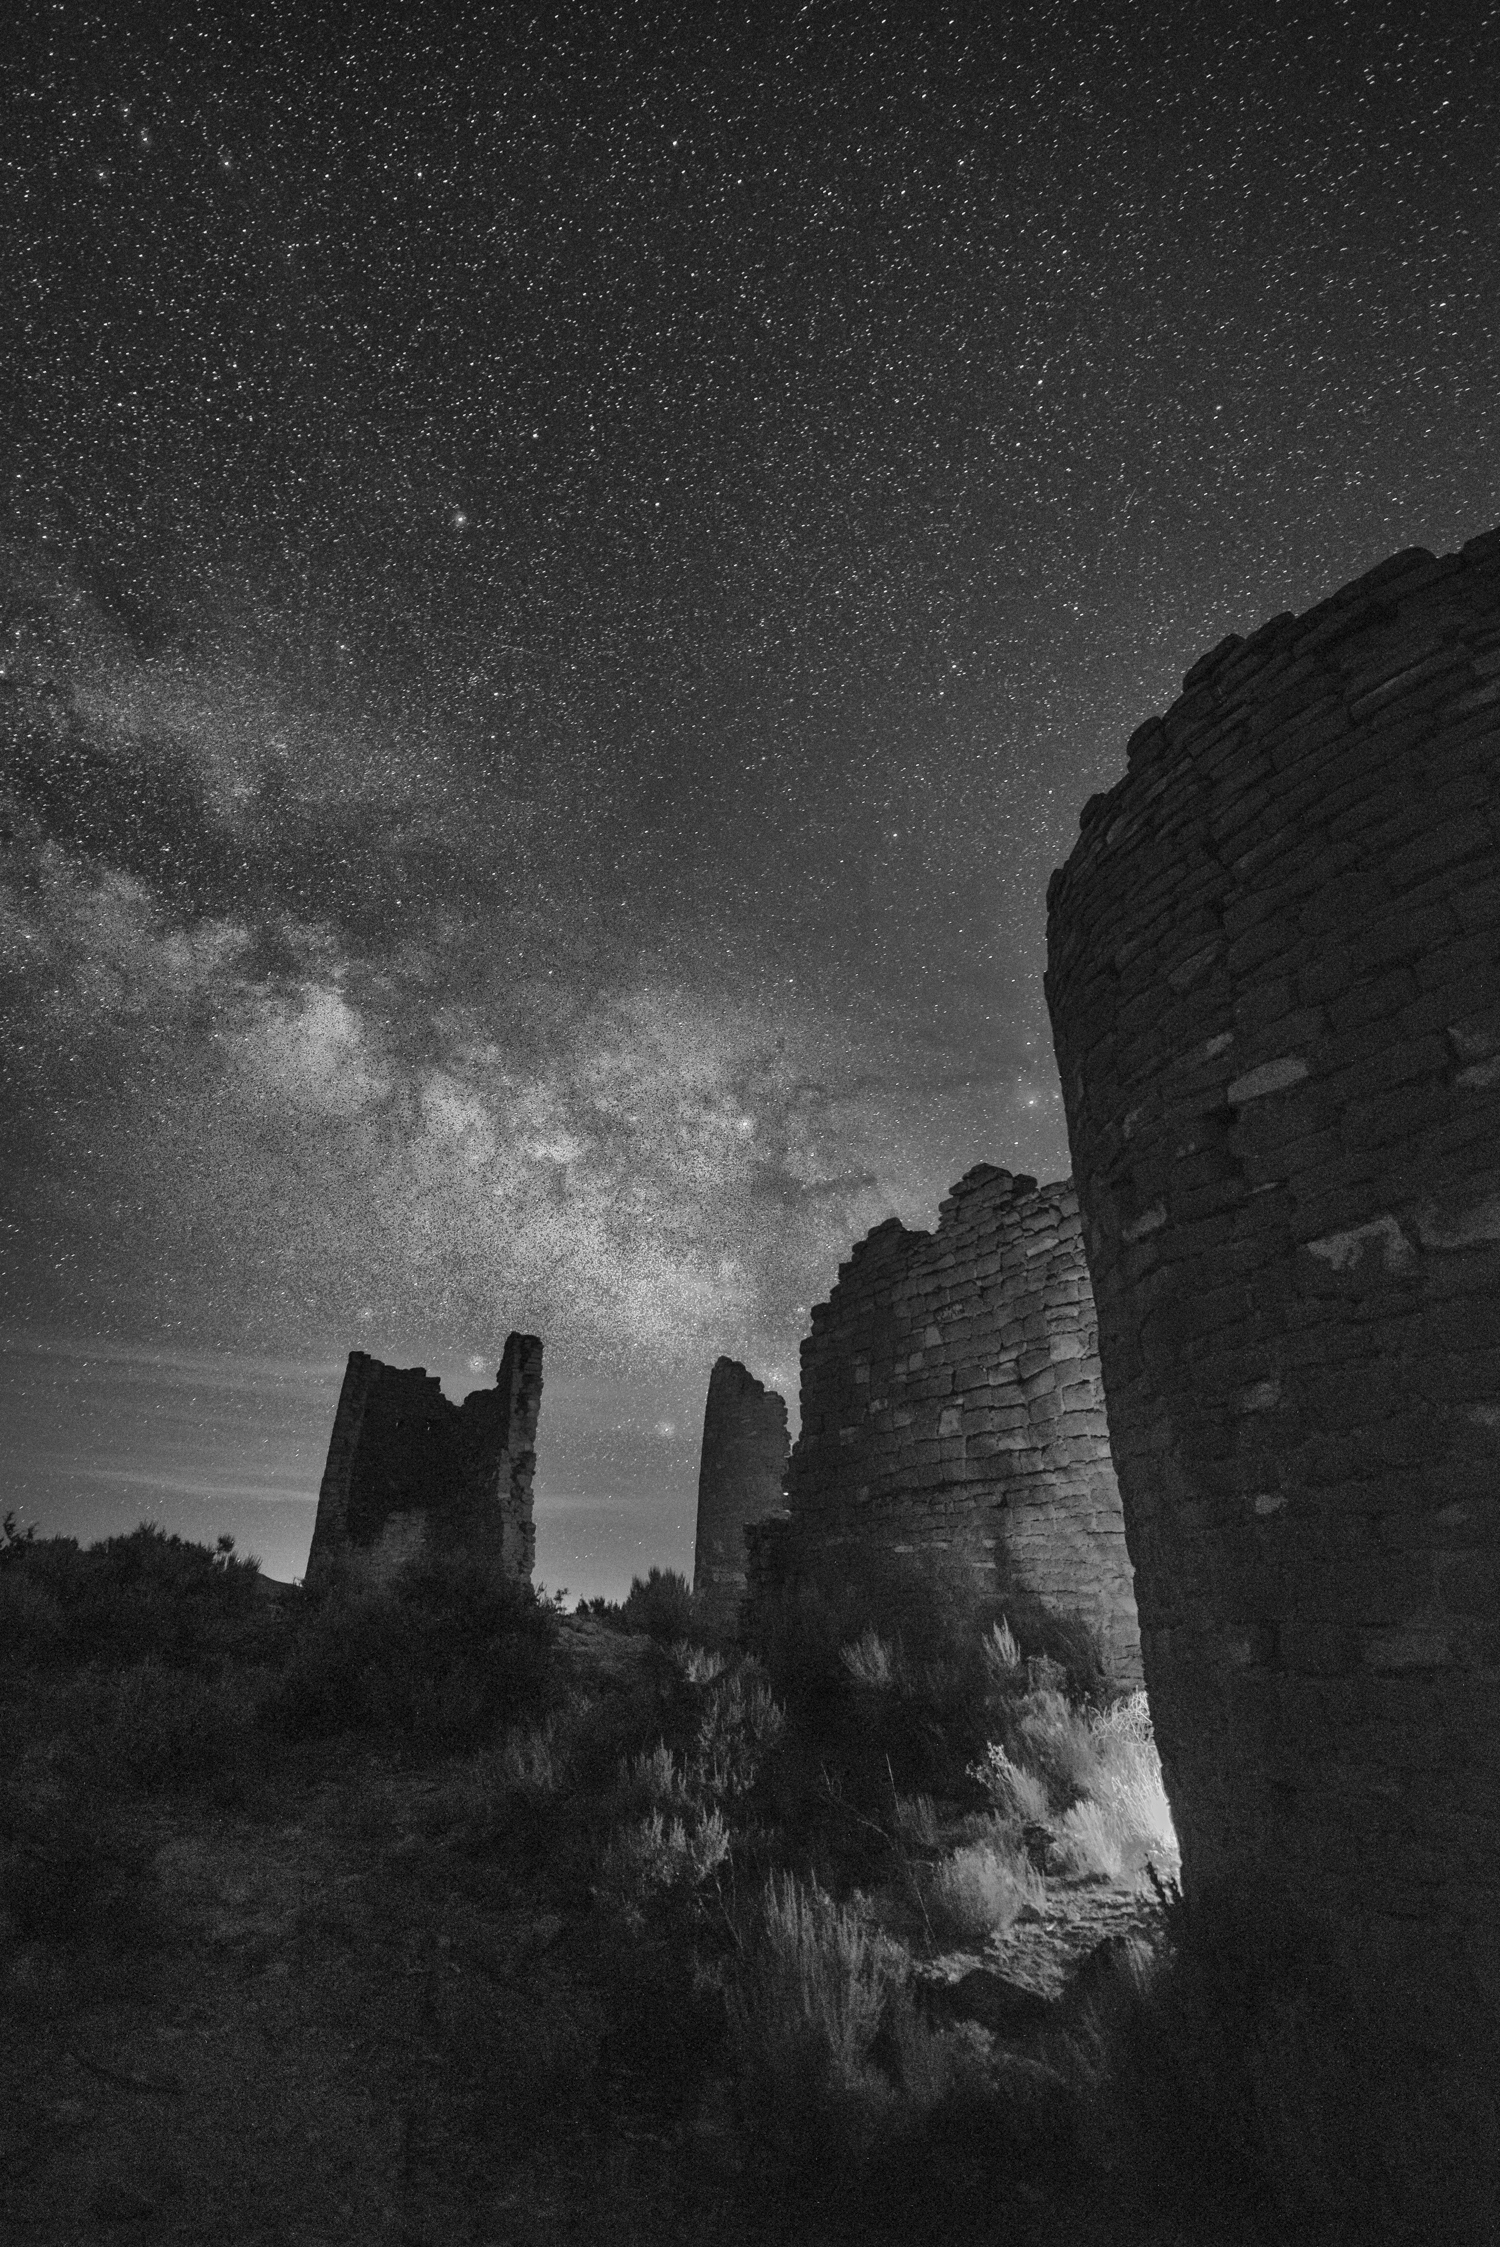 Around the backside of the ruins, I found this. Nikon D750, Zeiss Distagon 15mm f/2.8. 25 seconds, f/2.8, ISO 6400.